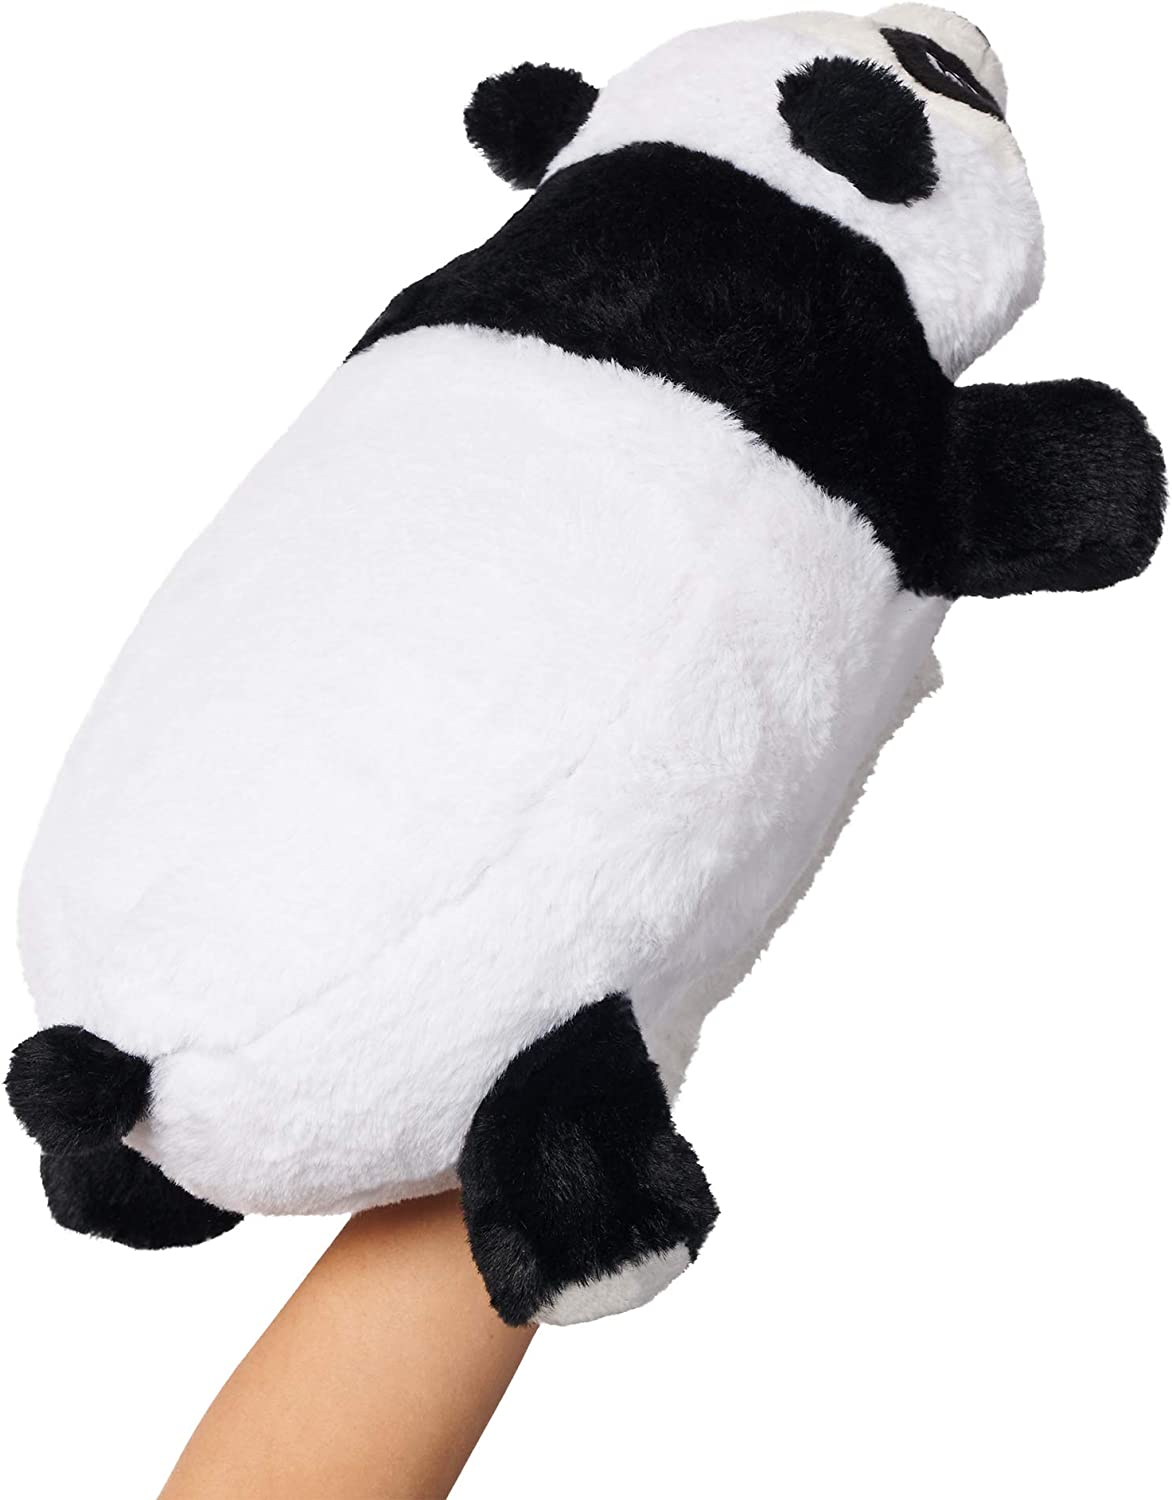 The Perfect Companion While Playing at Home or Traveling on an Airplane Panda Kids Travel Pillow Snuggle Glove